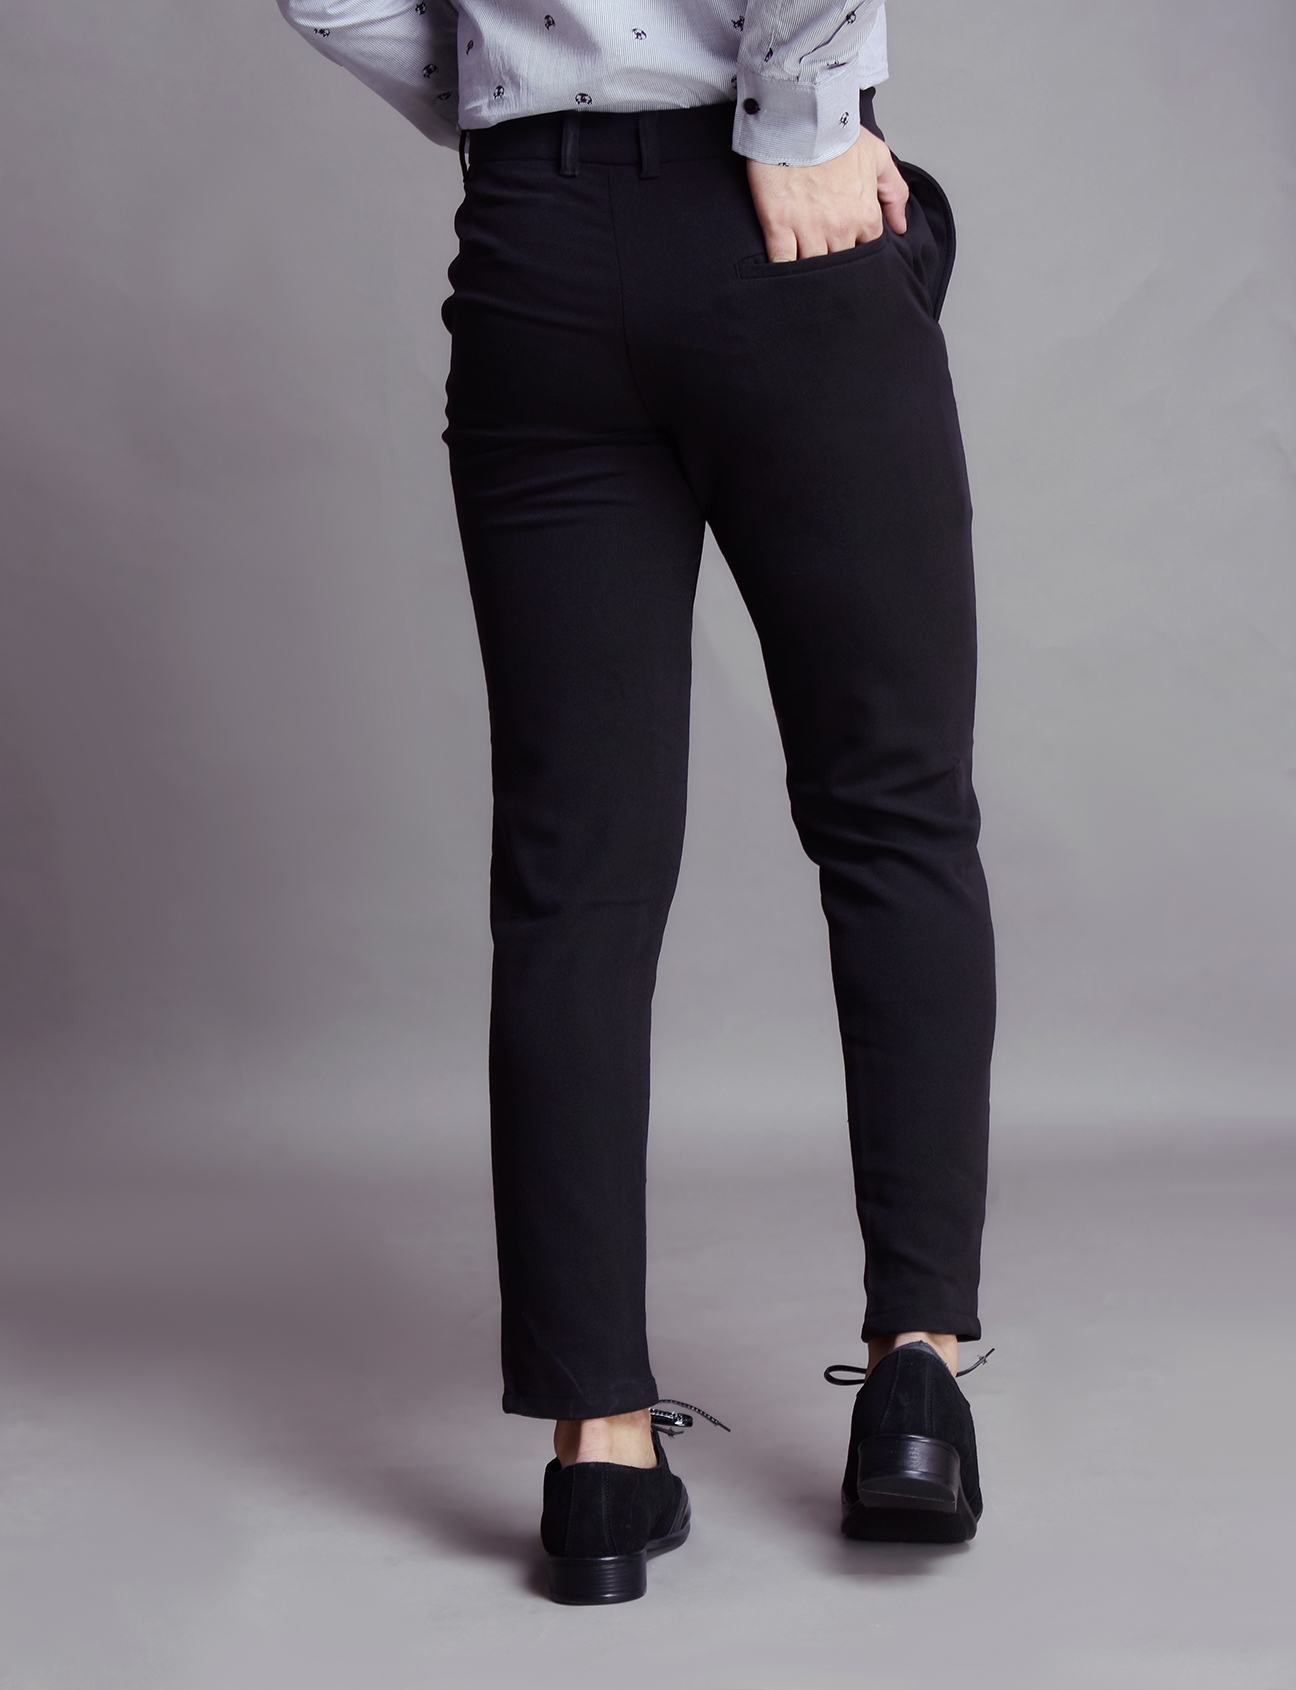 Flowing ankle pants